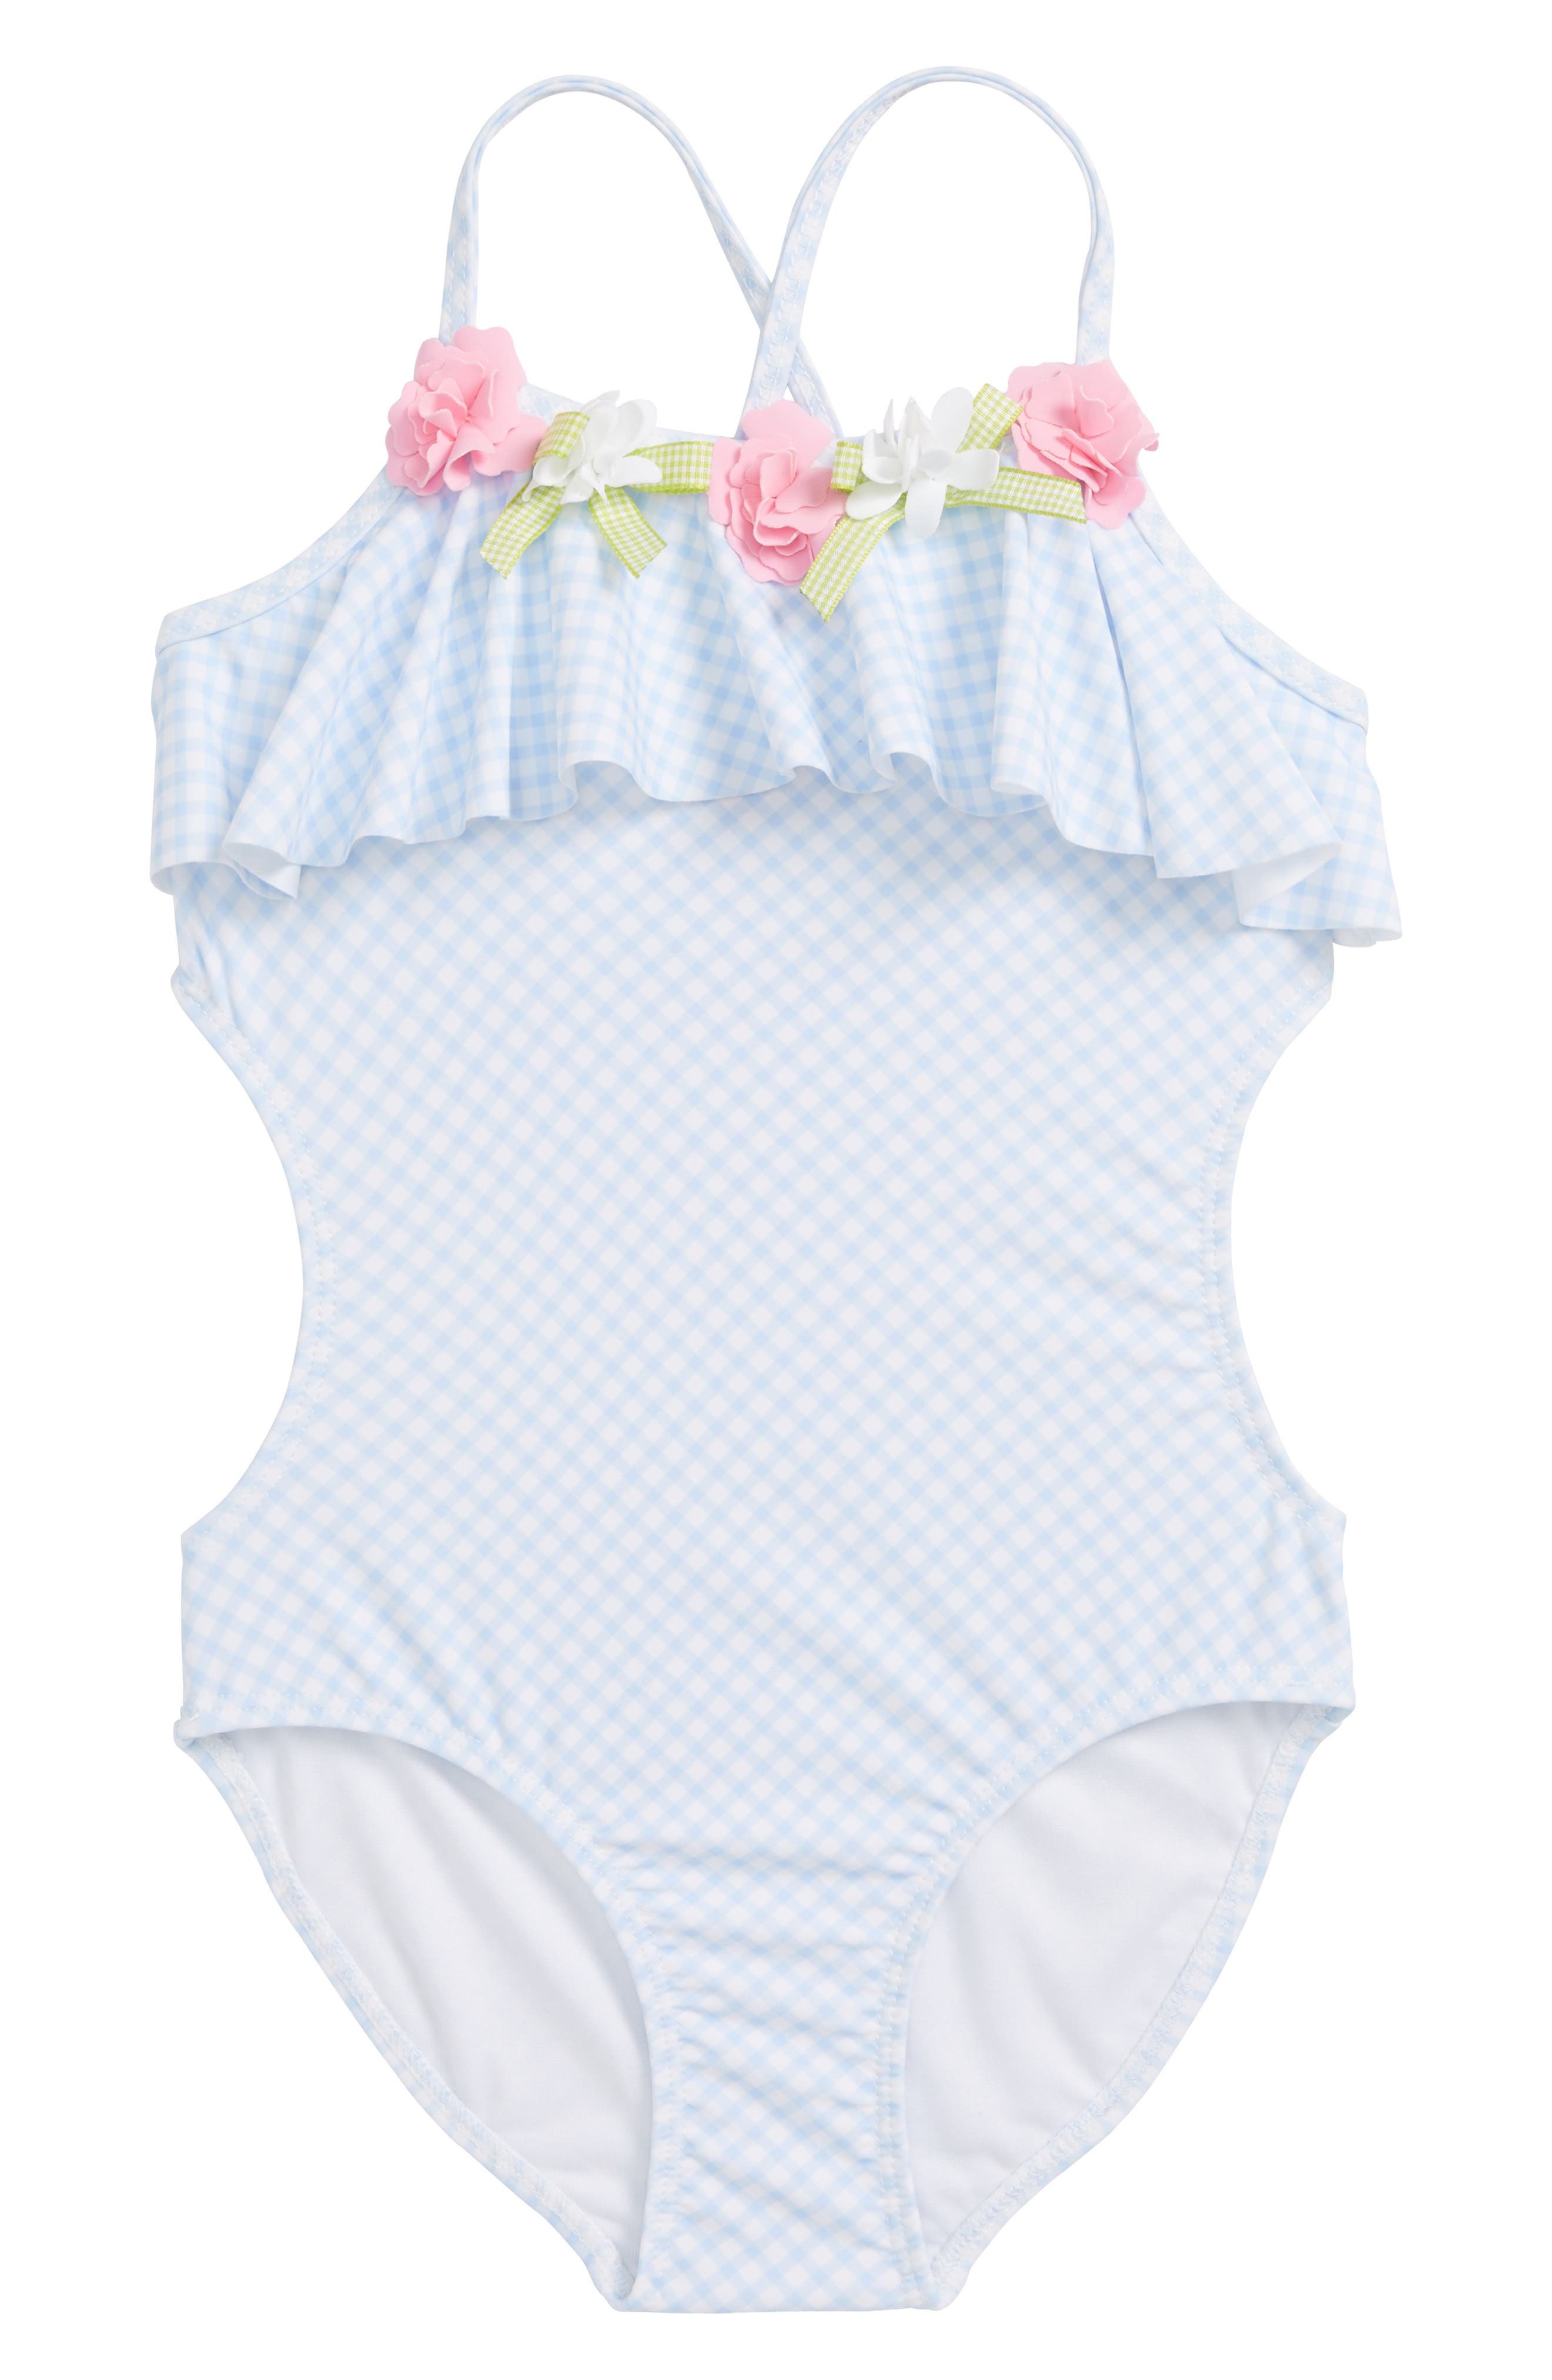 Main Image - Kate Mack Gingham One-Piece Swimsuit (Toddler Girls & Little Girls)